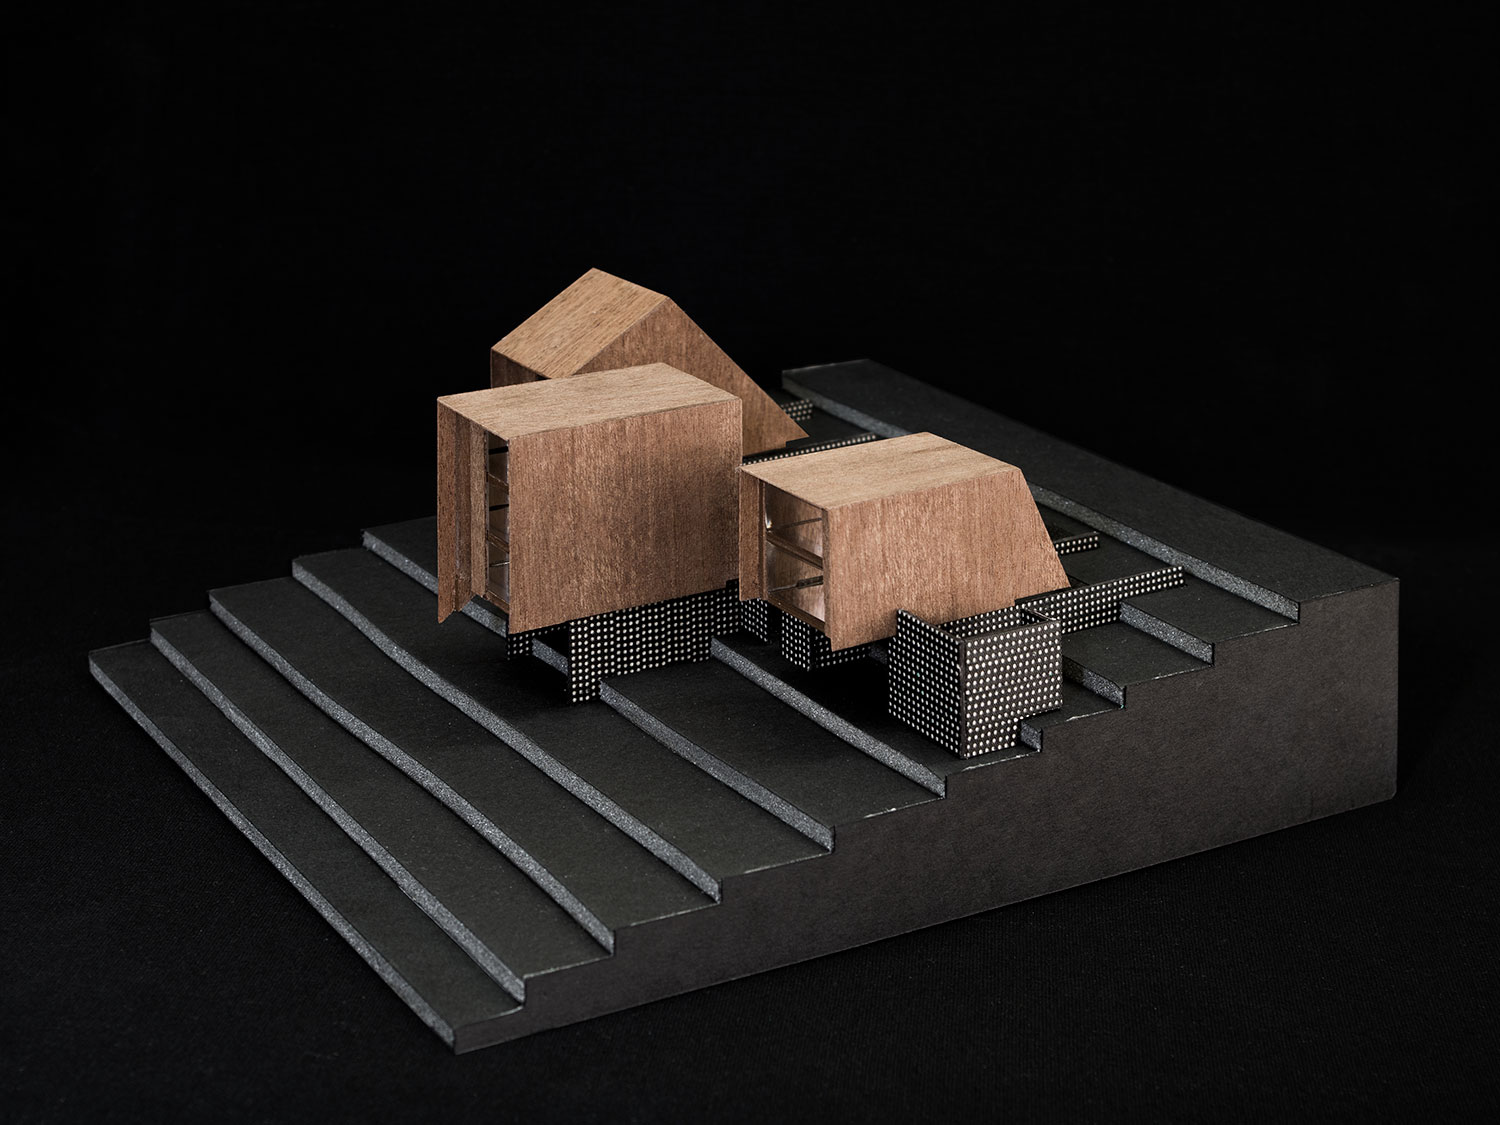 hyde-and-hyde-VHR-faroe-islands-housing-model-front.jpg